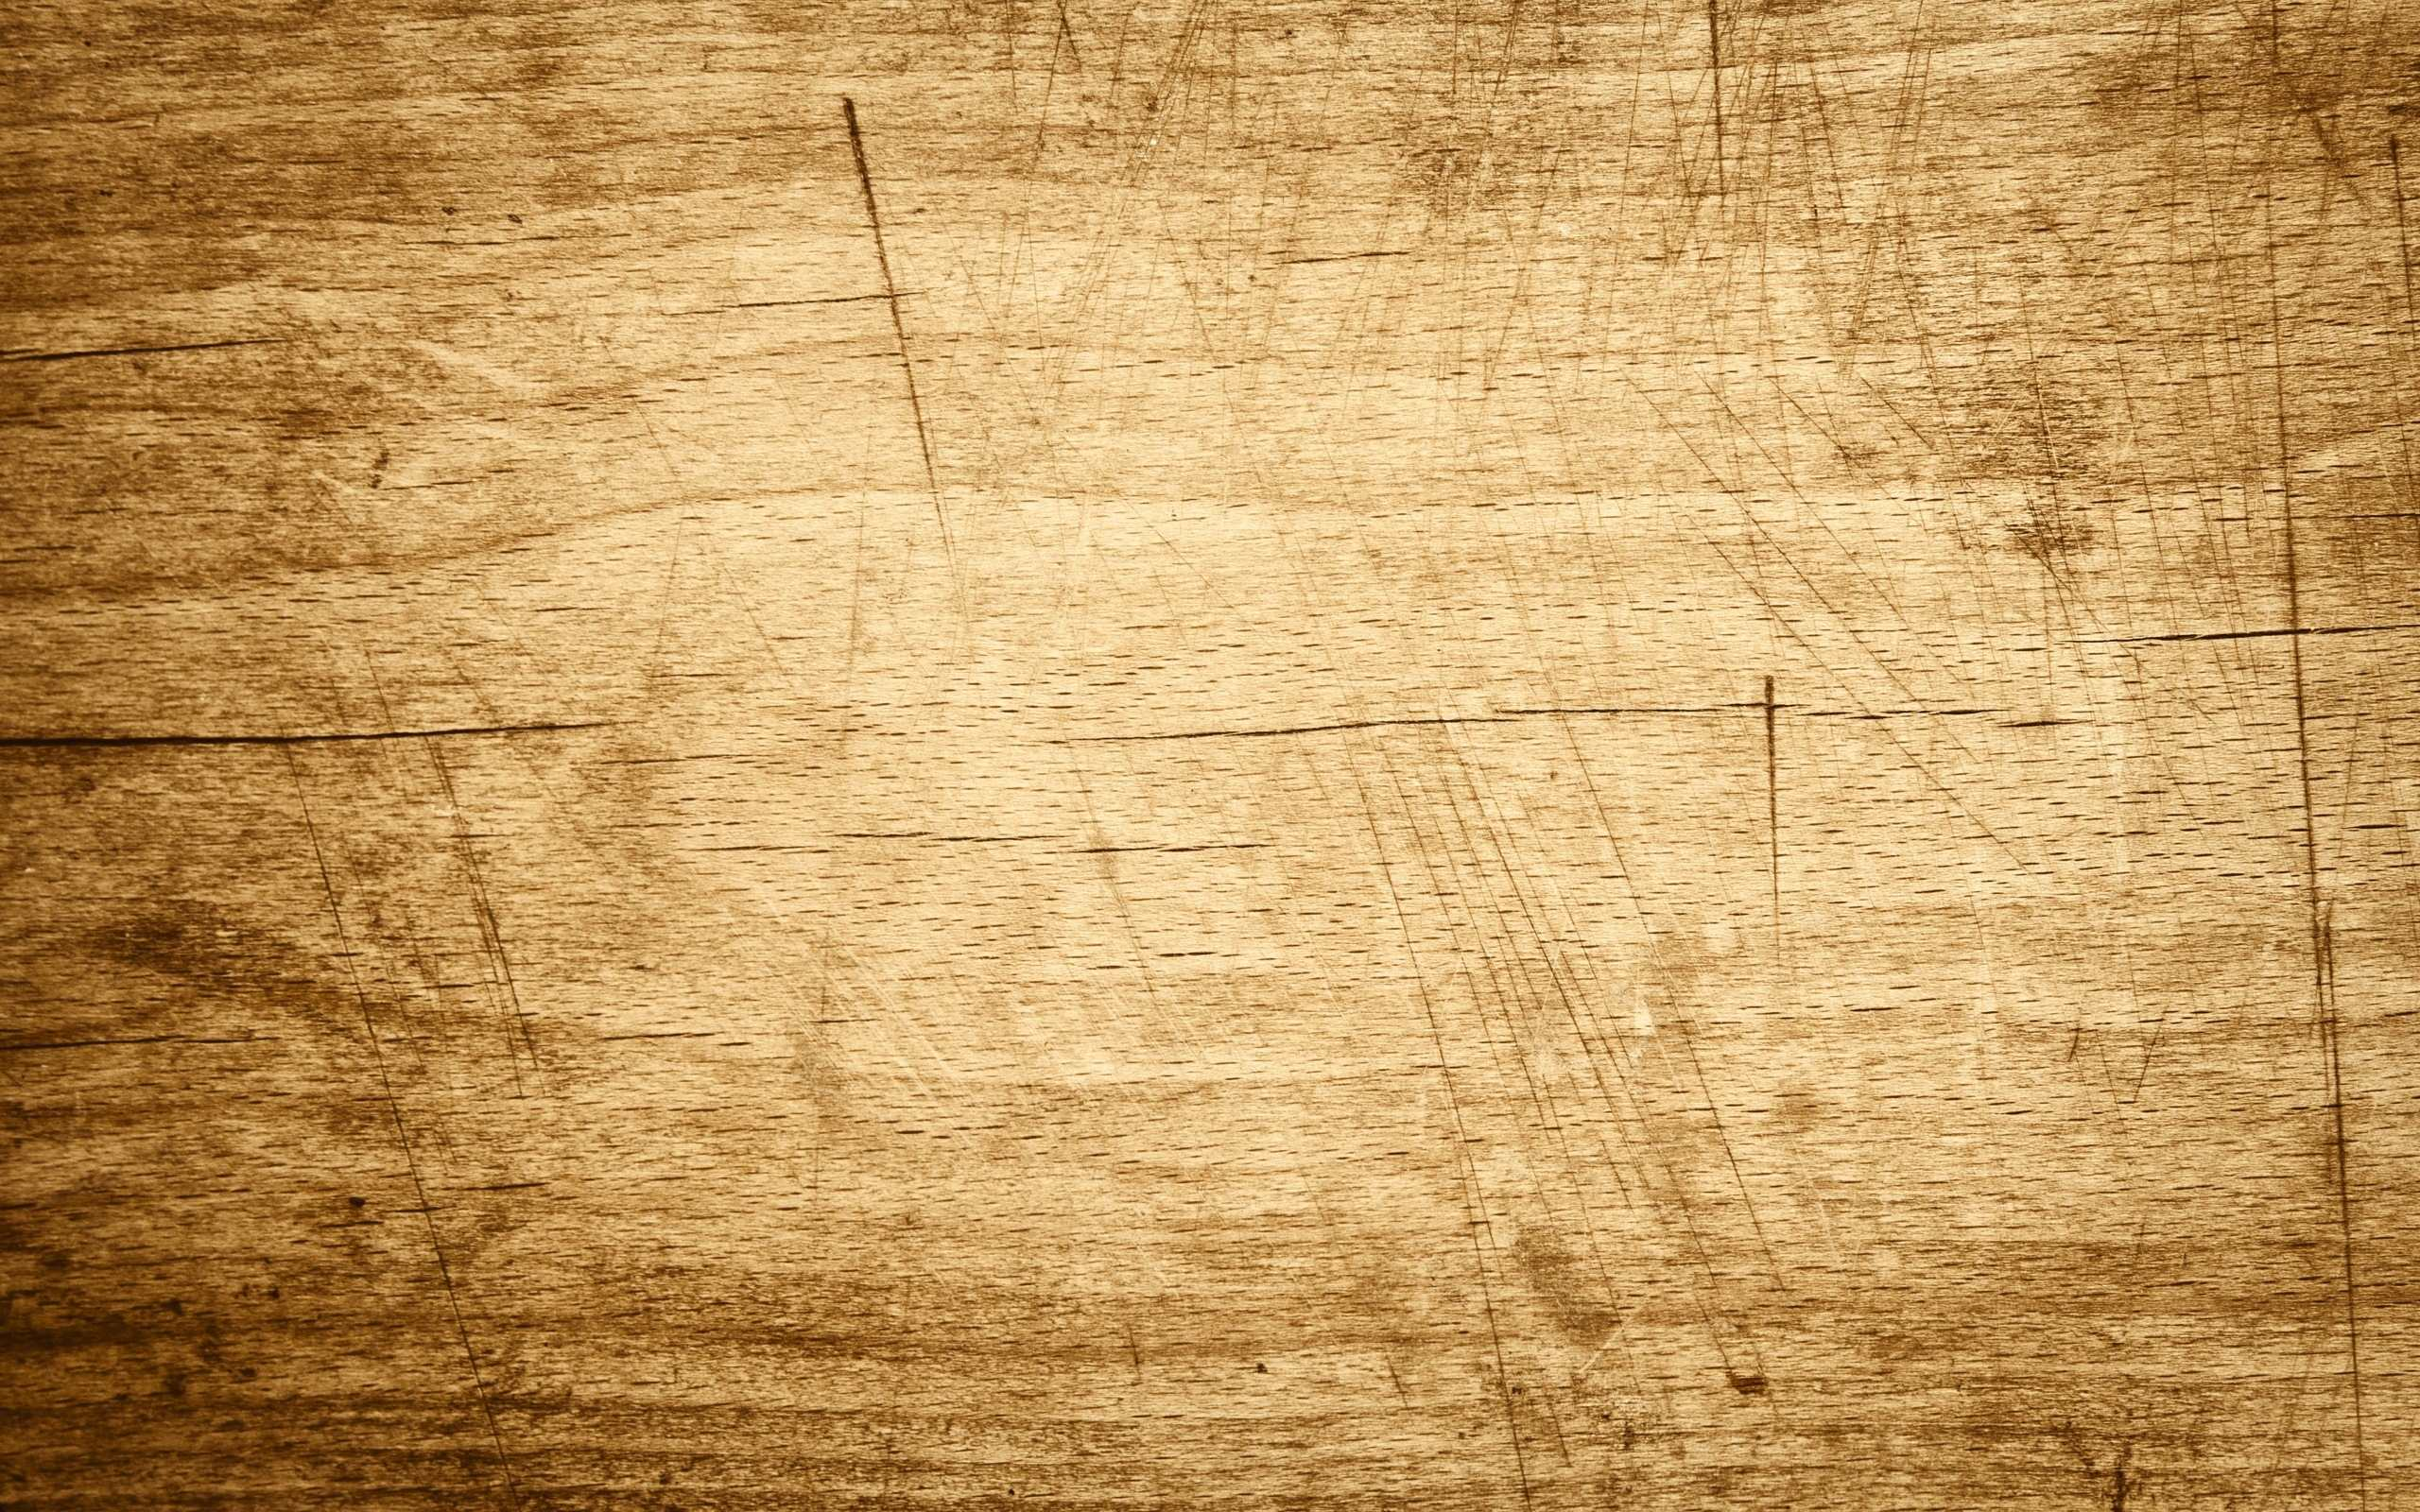 wallpaper wood 2 - photo #4